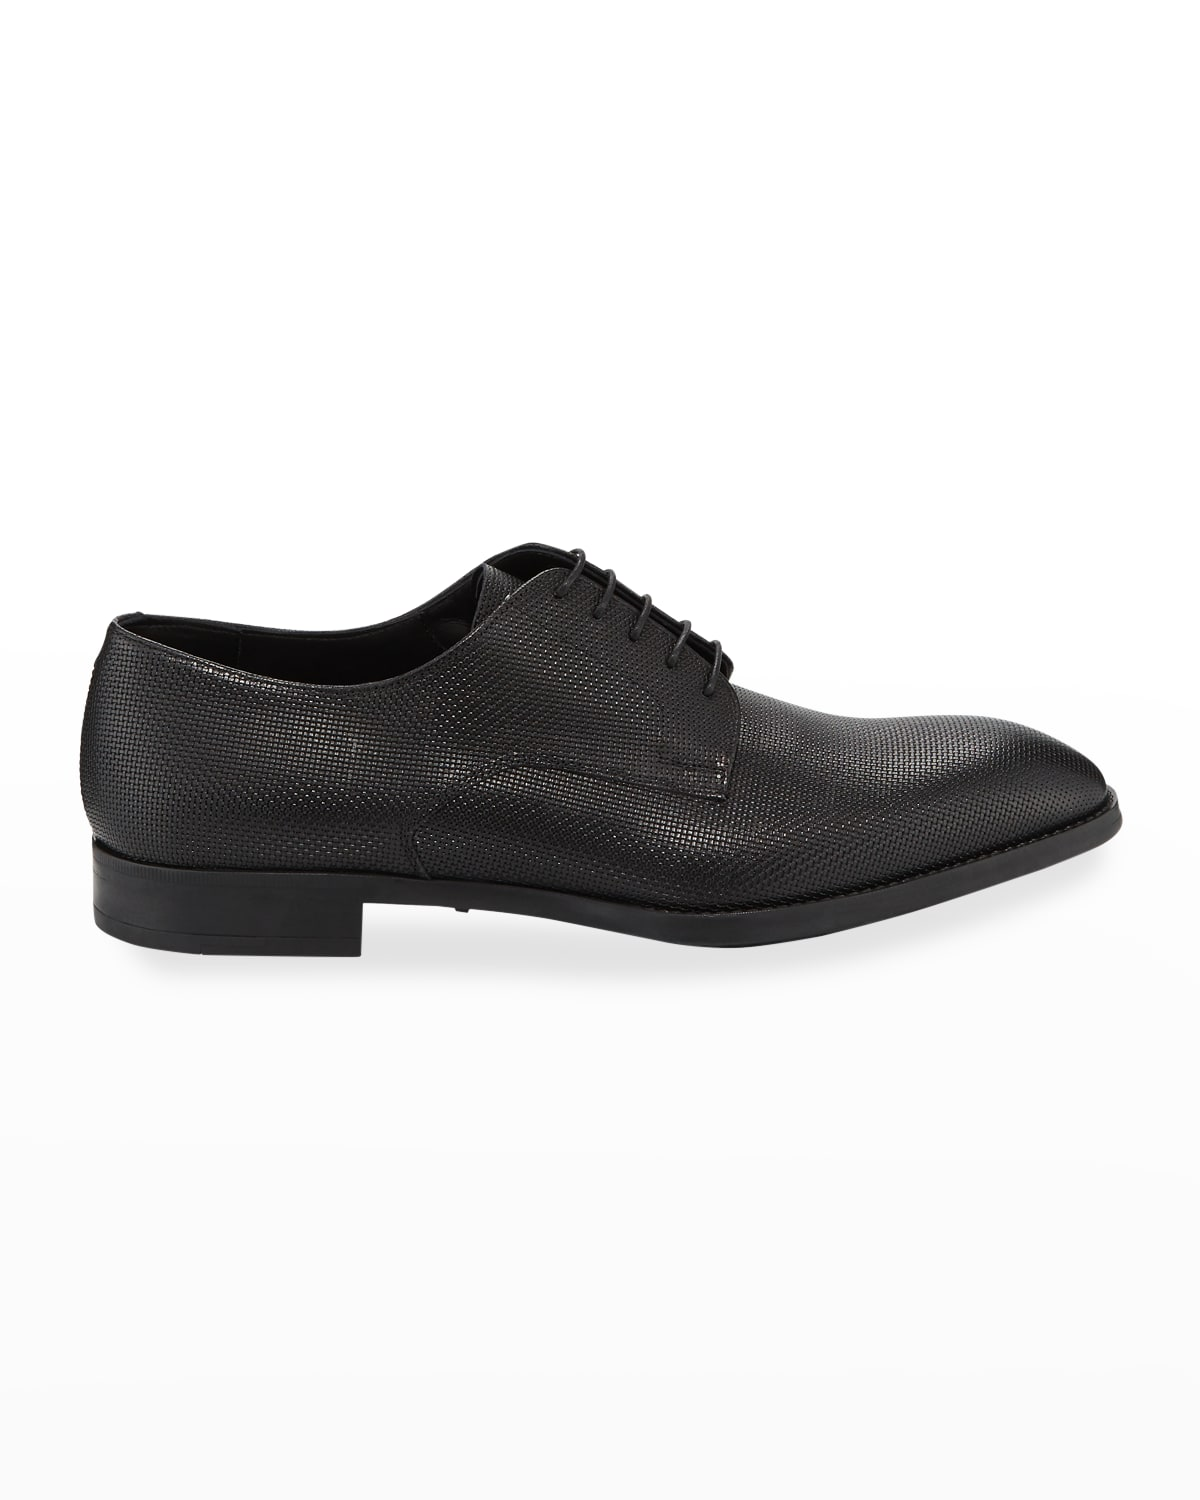 Men's Textured Leather Derby Shoes